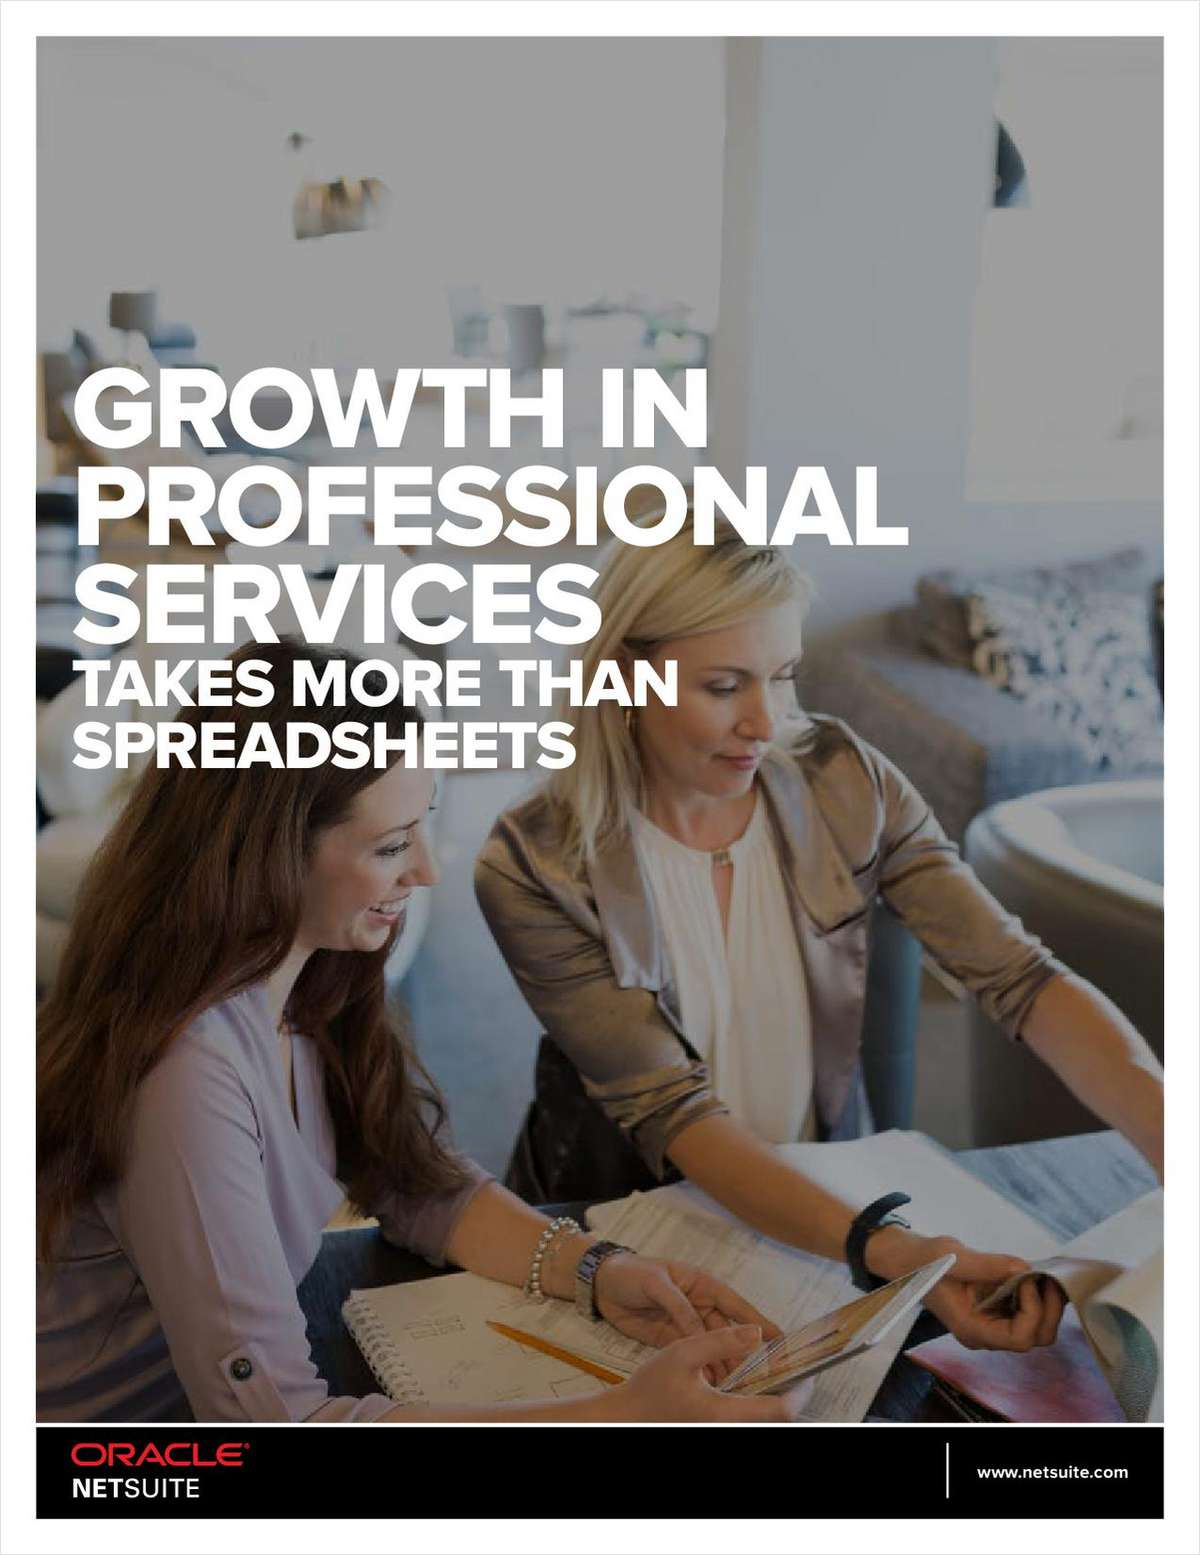 Growth in Professional Services Takes More Than Spreadsheets